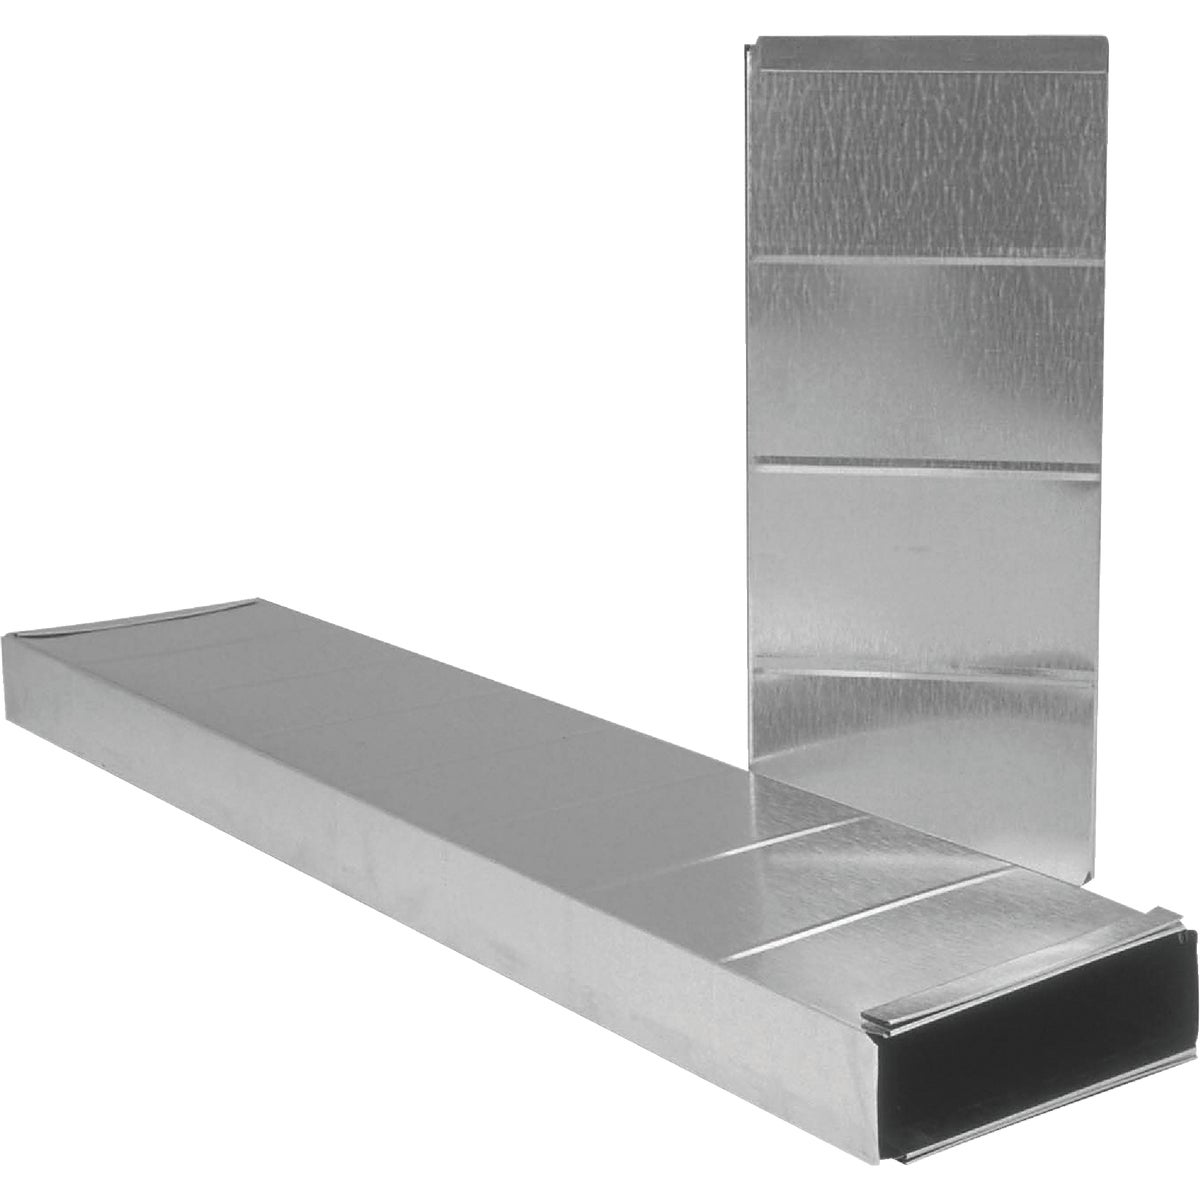 Imperial Mfg Group 3-1/4X10X24 DUCT GV0213